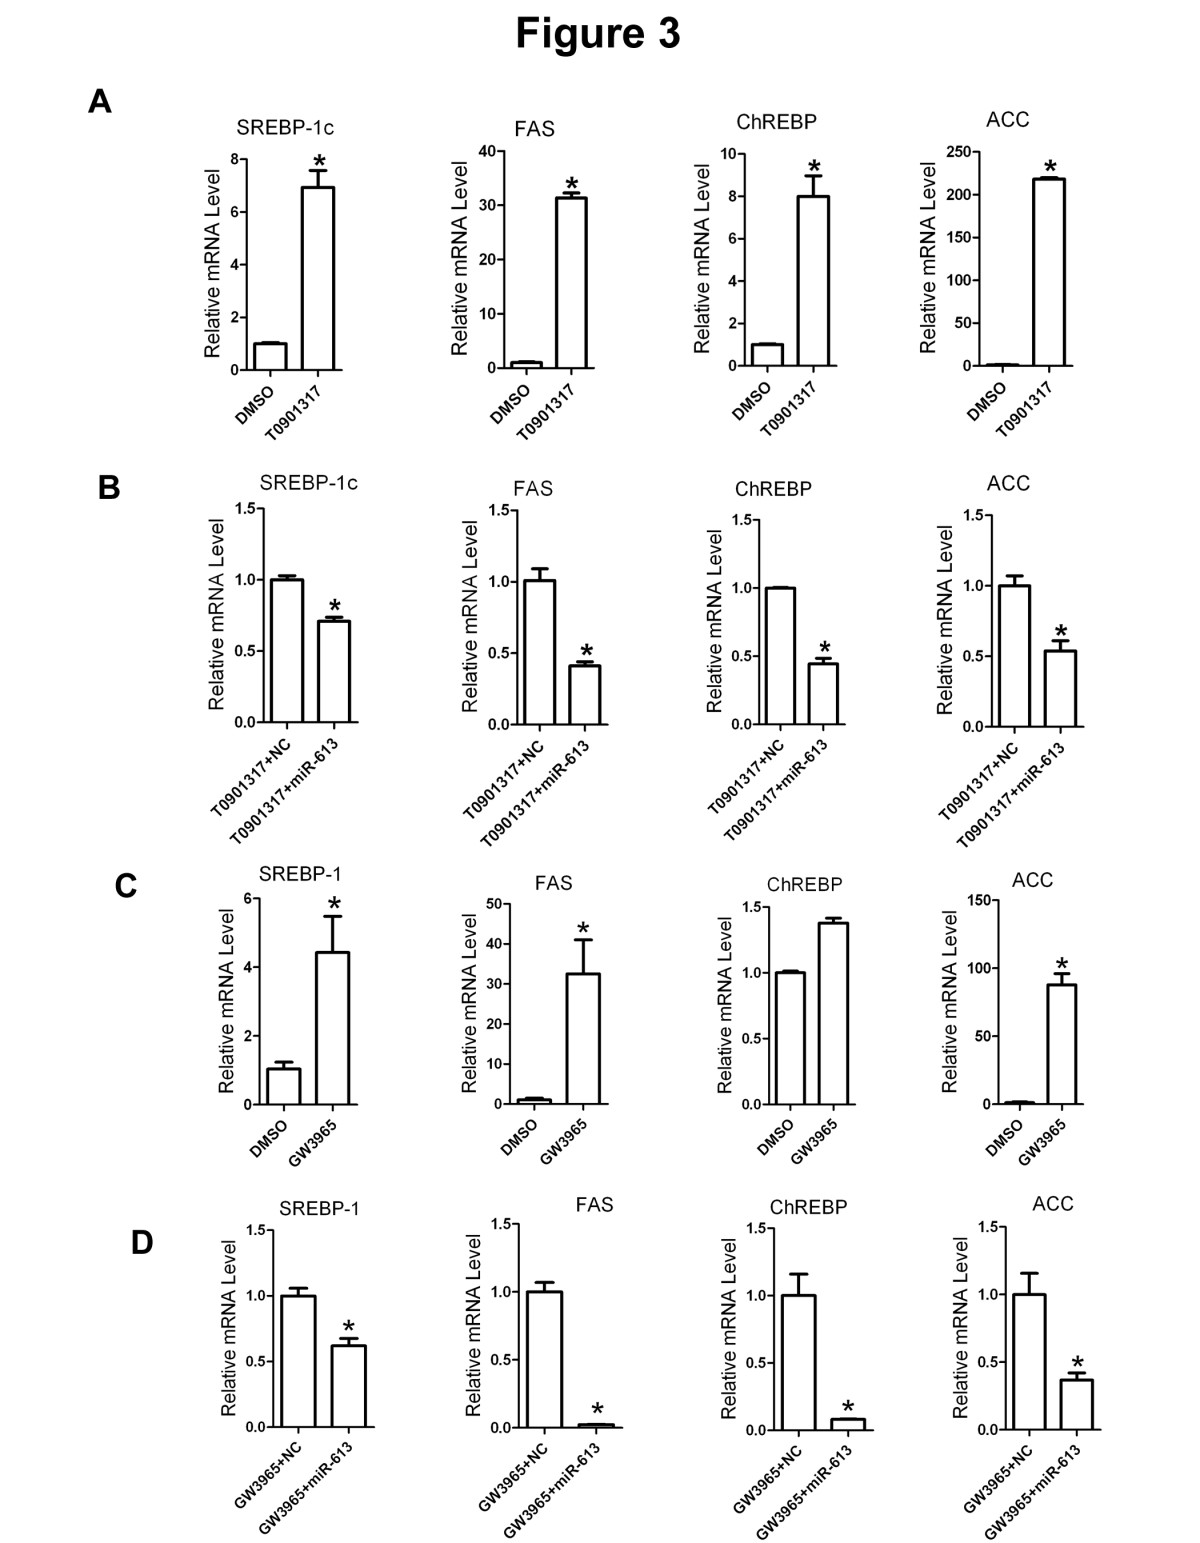 http://static-content.springer.com/image/art%3A10.1186%2F1476-511X-12-32/MediaObjects/12944_2012_Article_845_Fig3_HTML.jpg